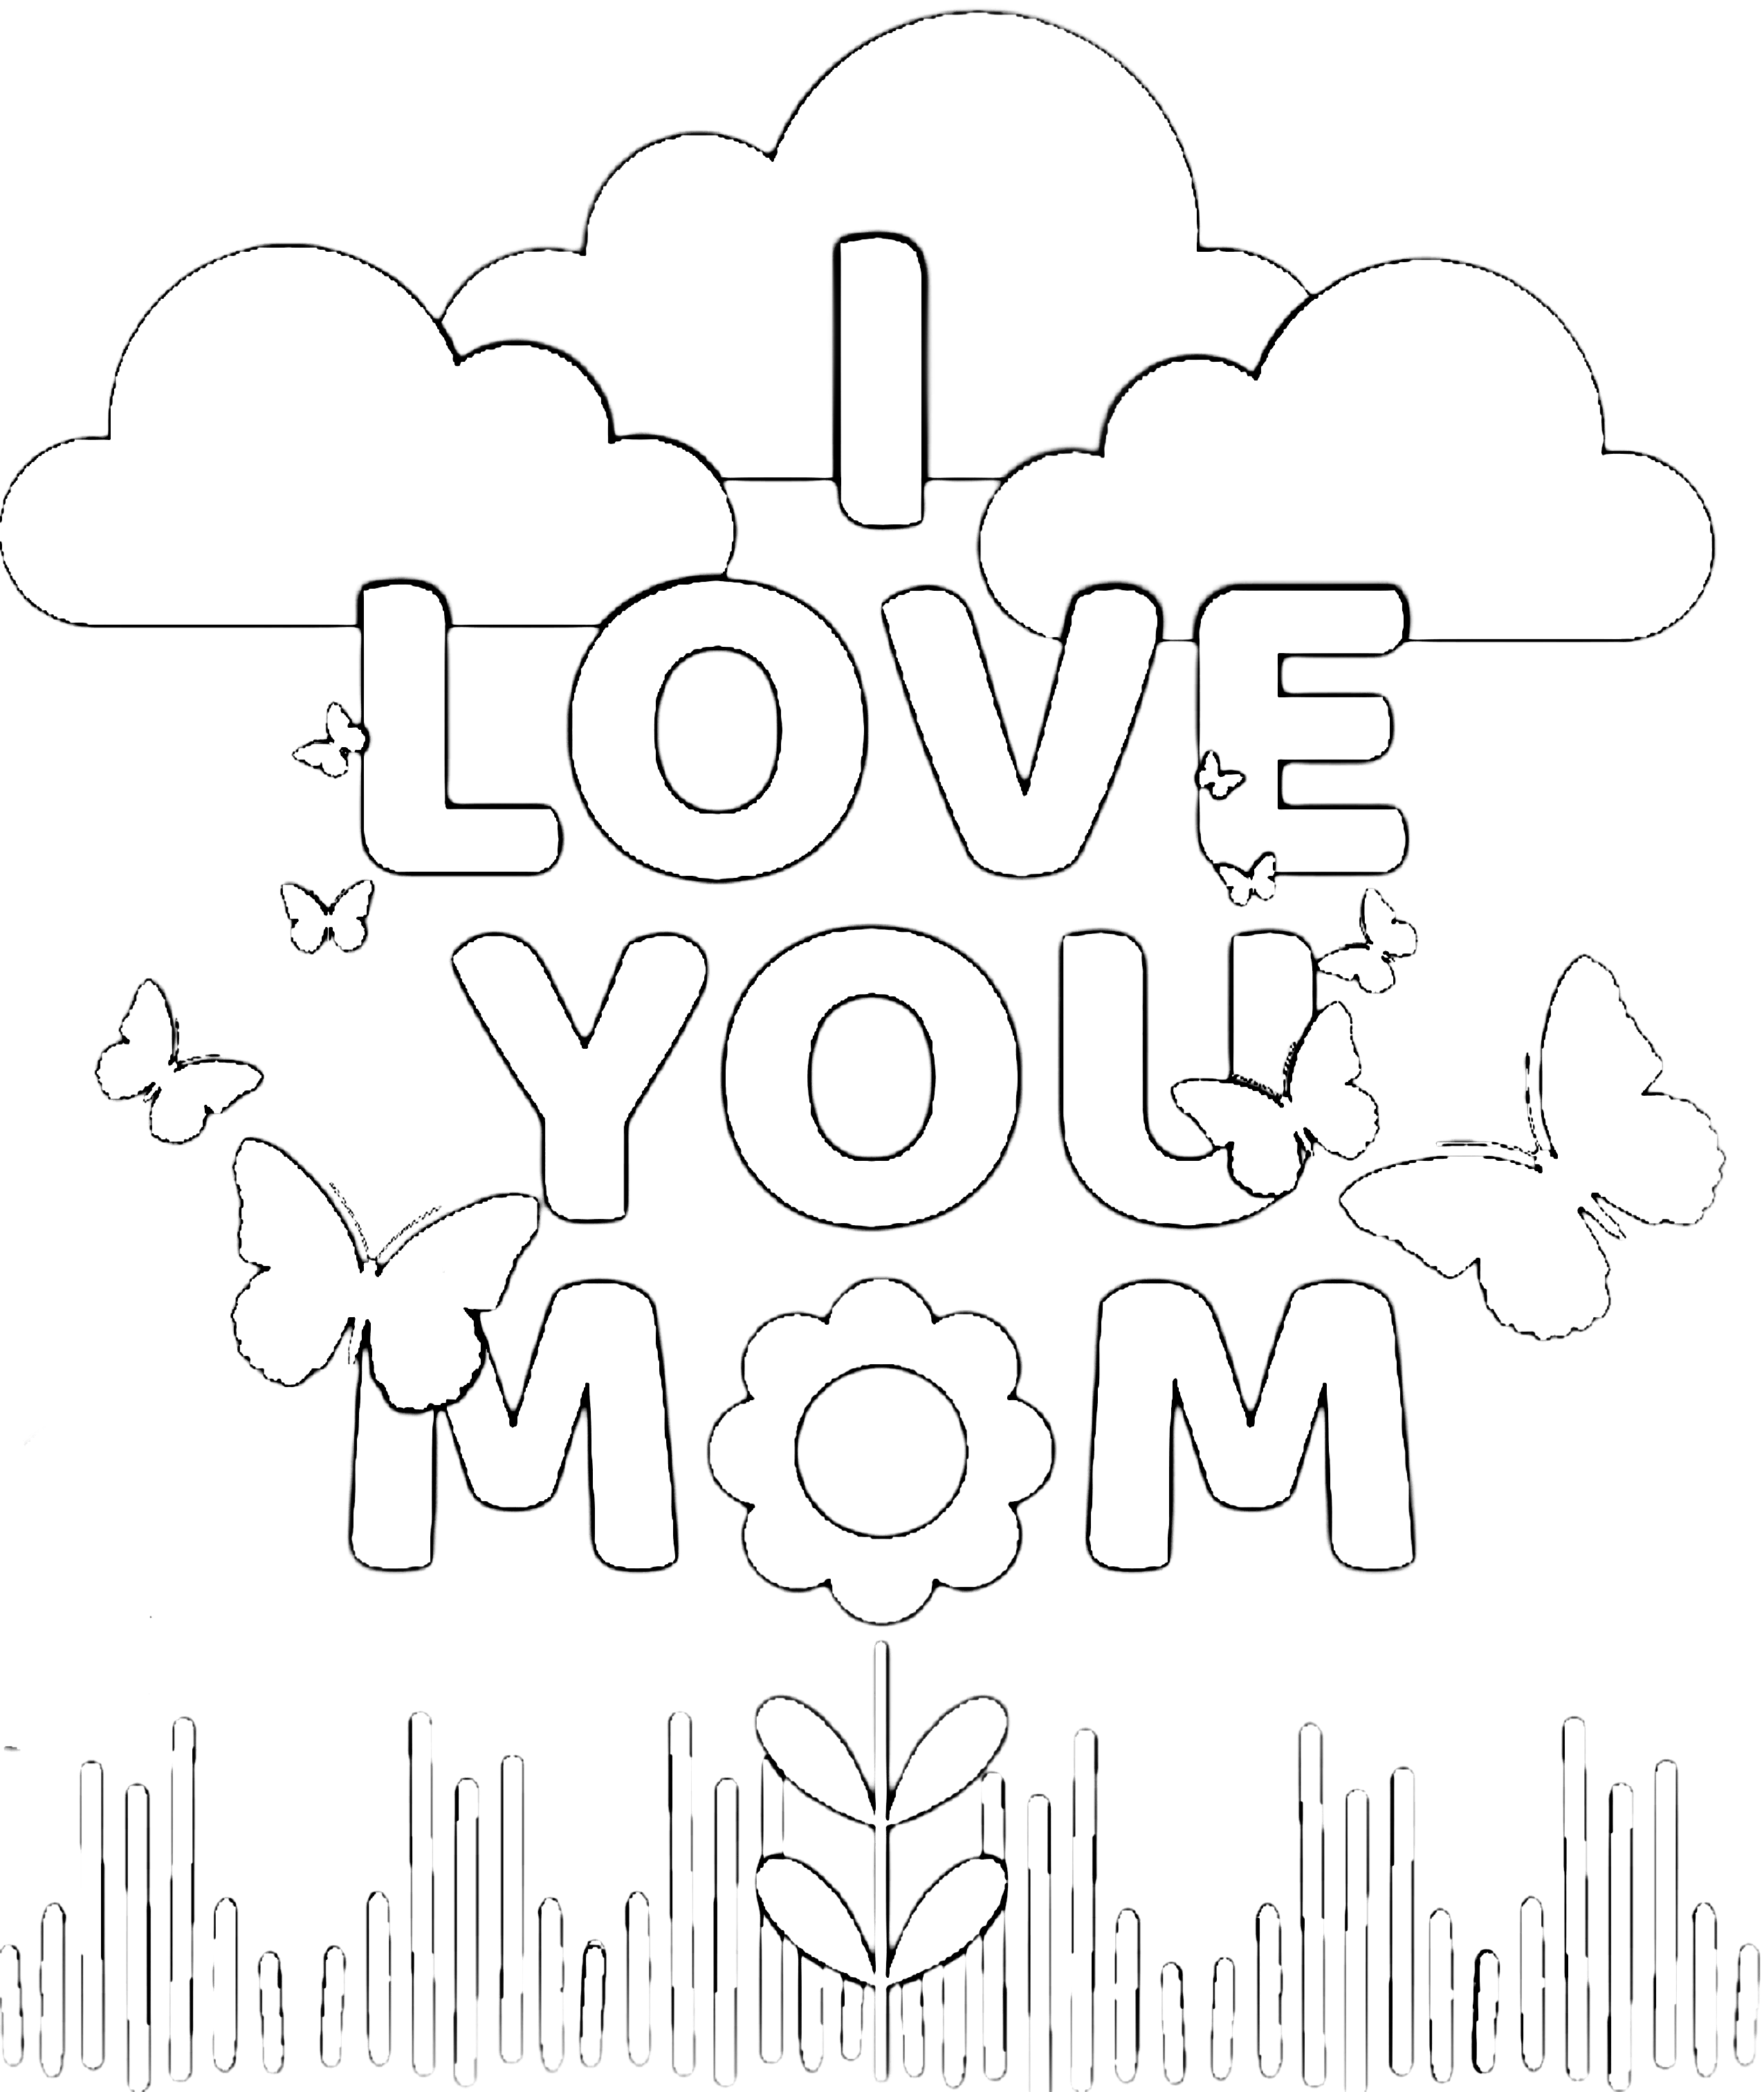 i love u mom coloring pages mother coloring page getcoloringpagescom mom i u love coloring pages